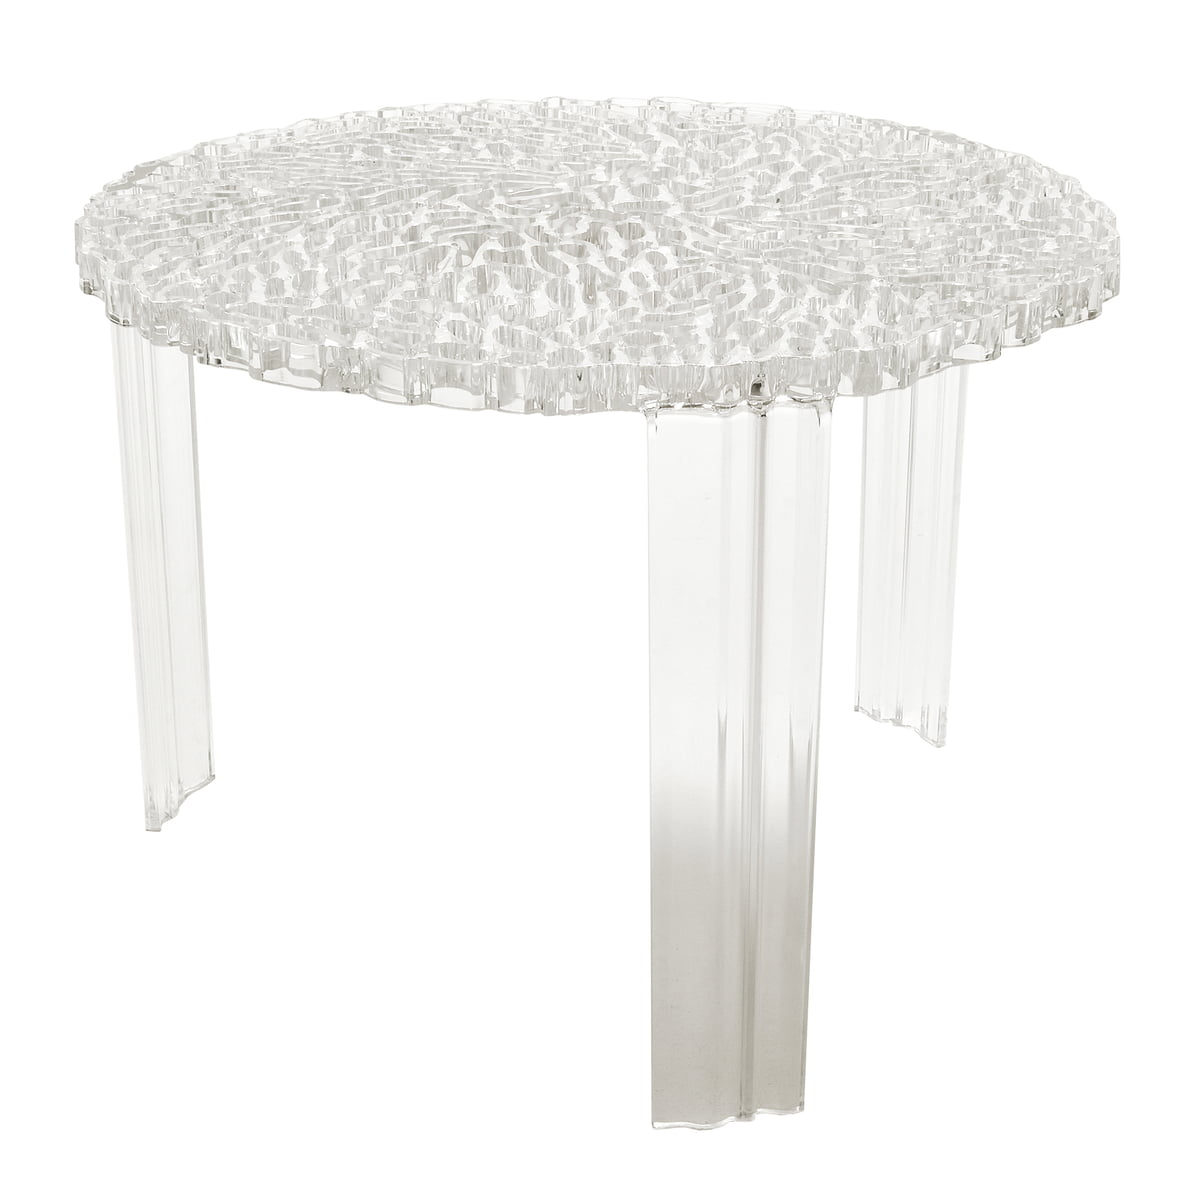 T table kartell shop for Table kartell